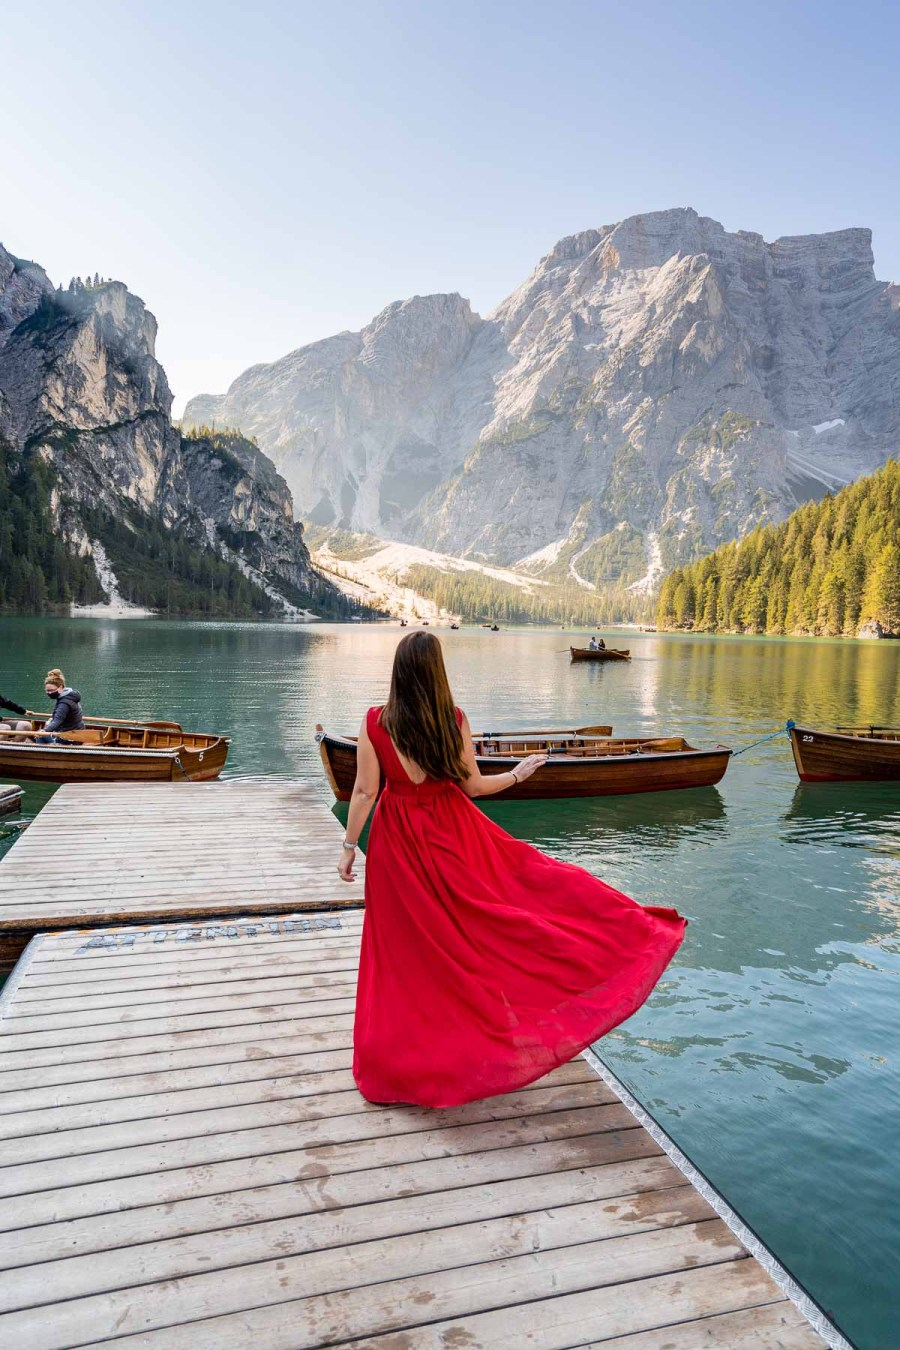 Girl in a red dress standing on the pier at Lago di Braies, which is a must visit on every Dolomites road trip itinerary